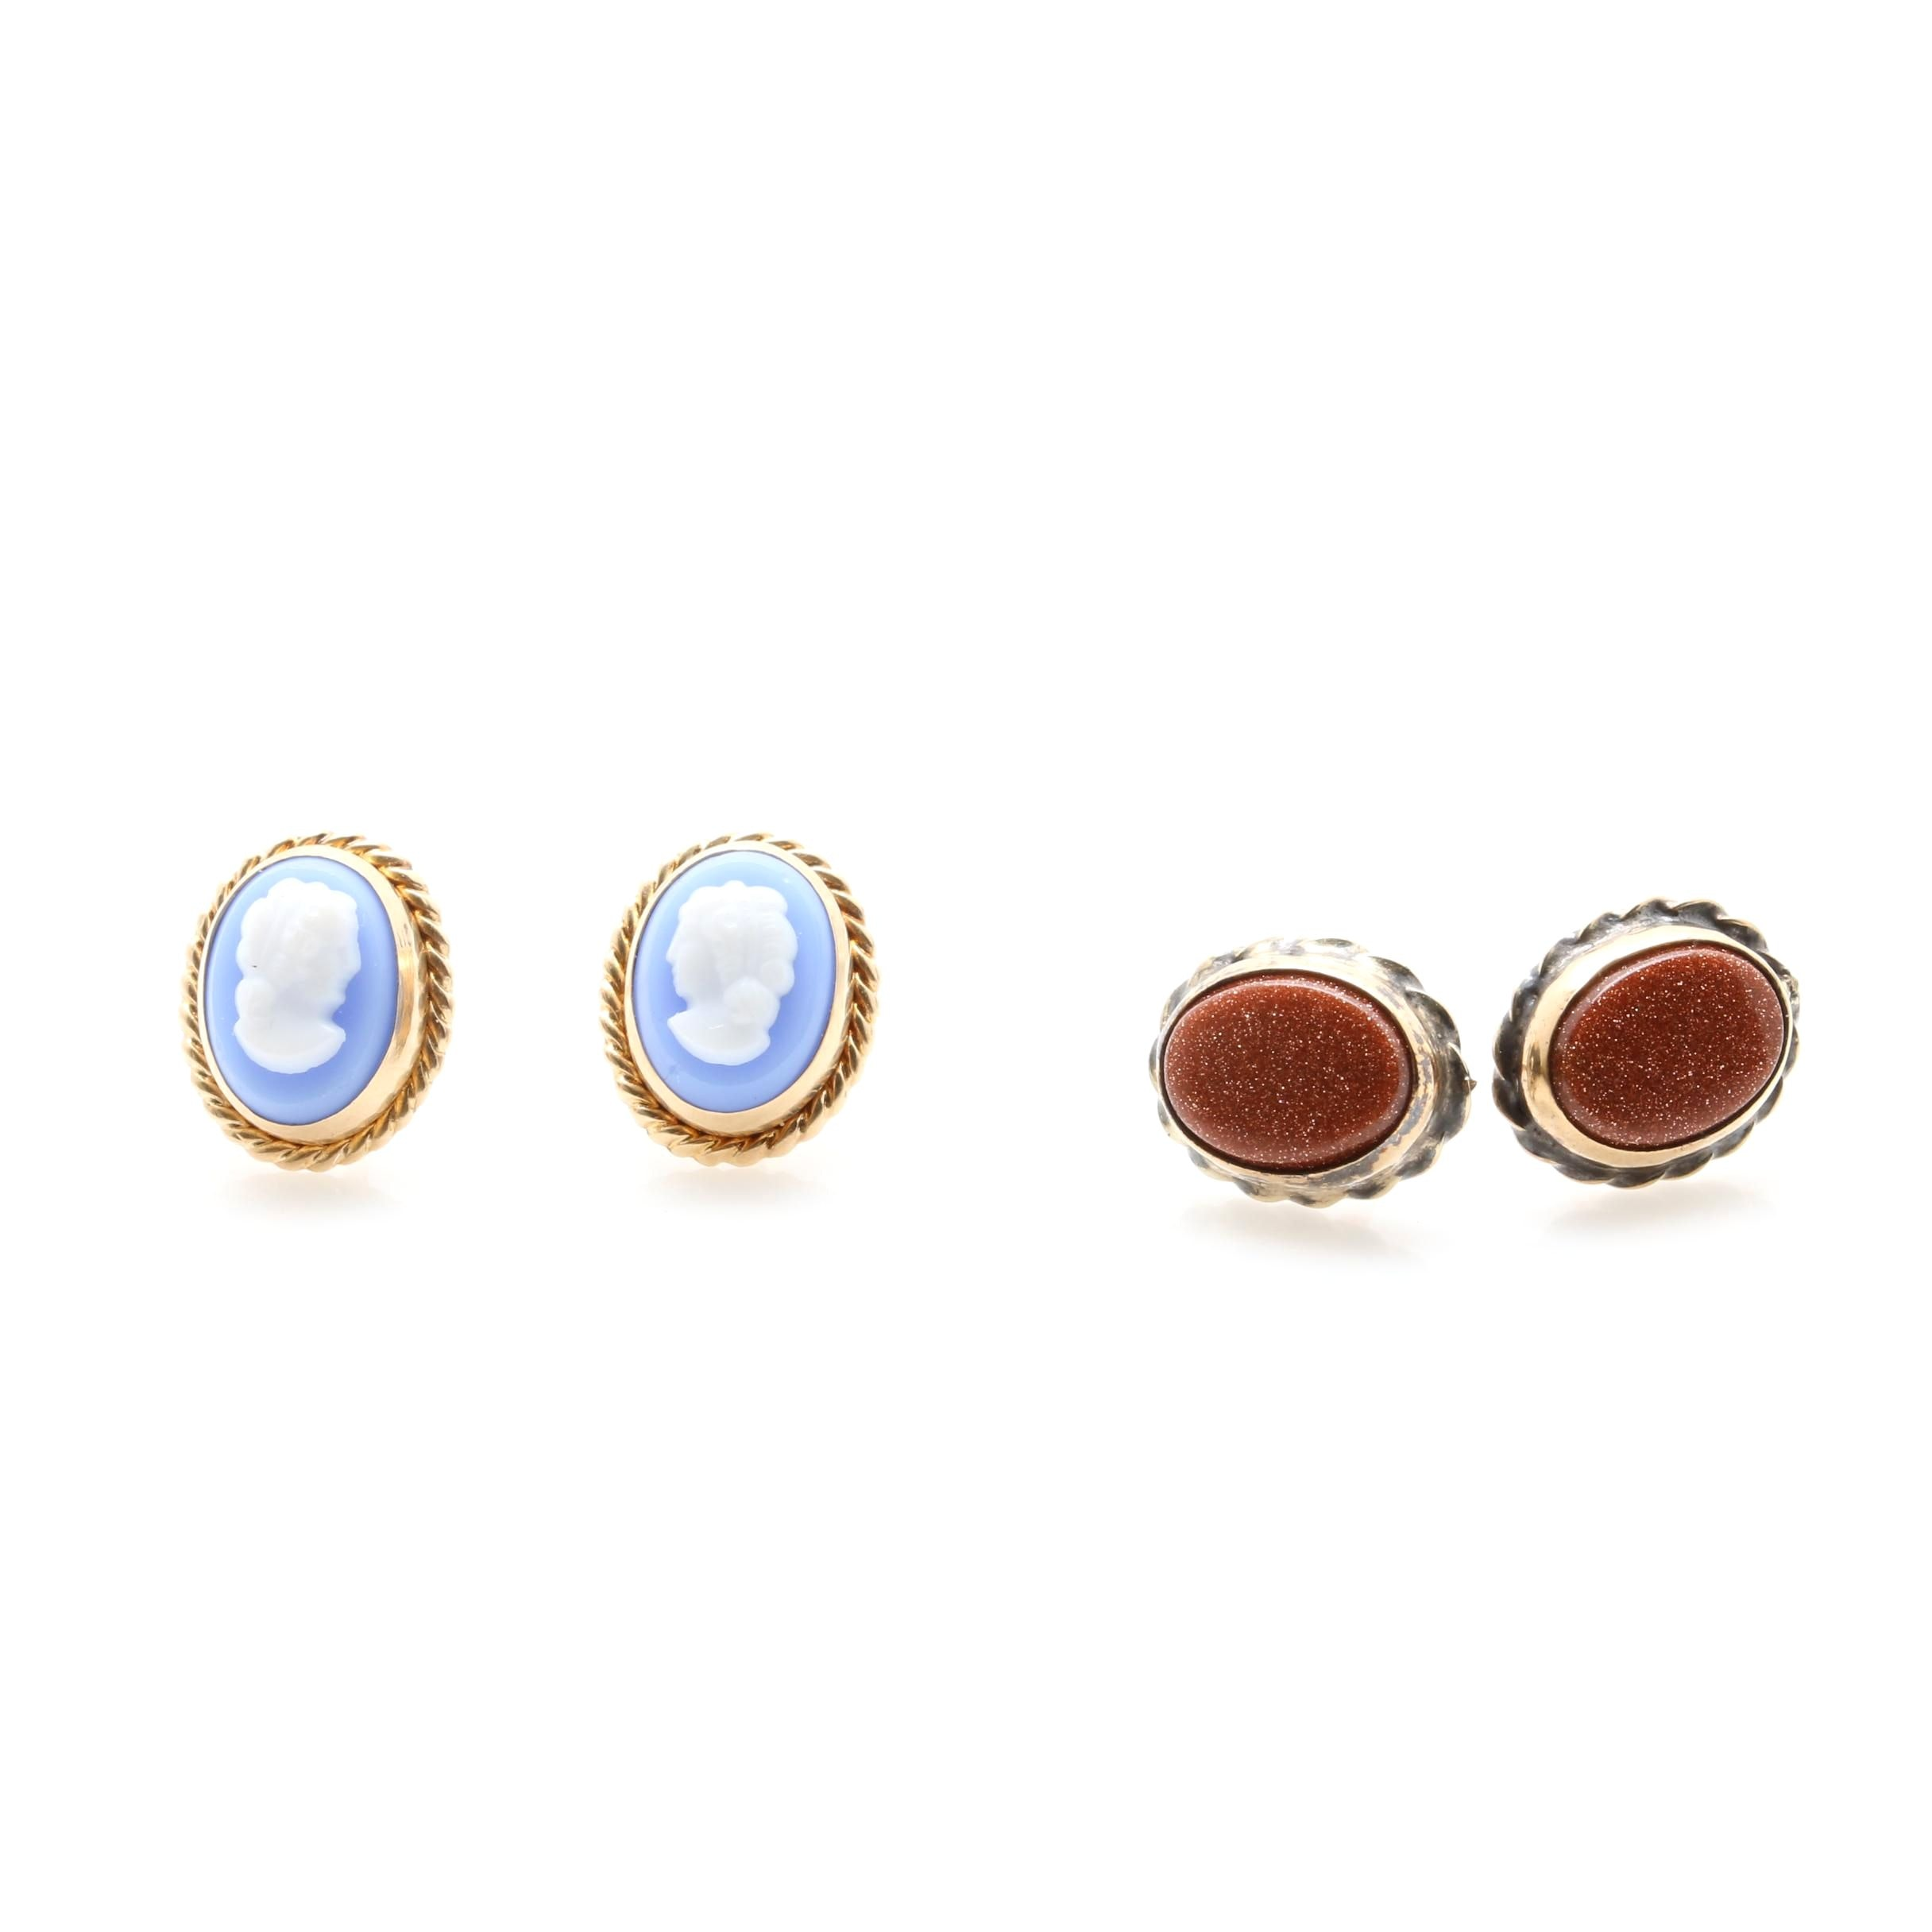 14K Yellow Gold Resin and Goldstone Glass Stud Earrings